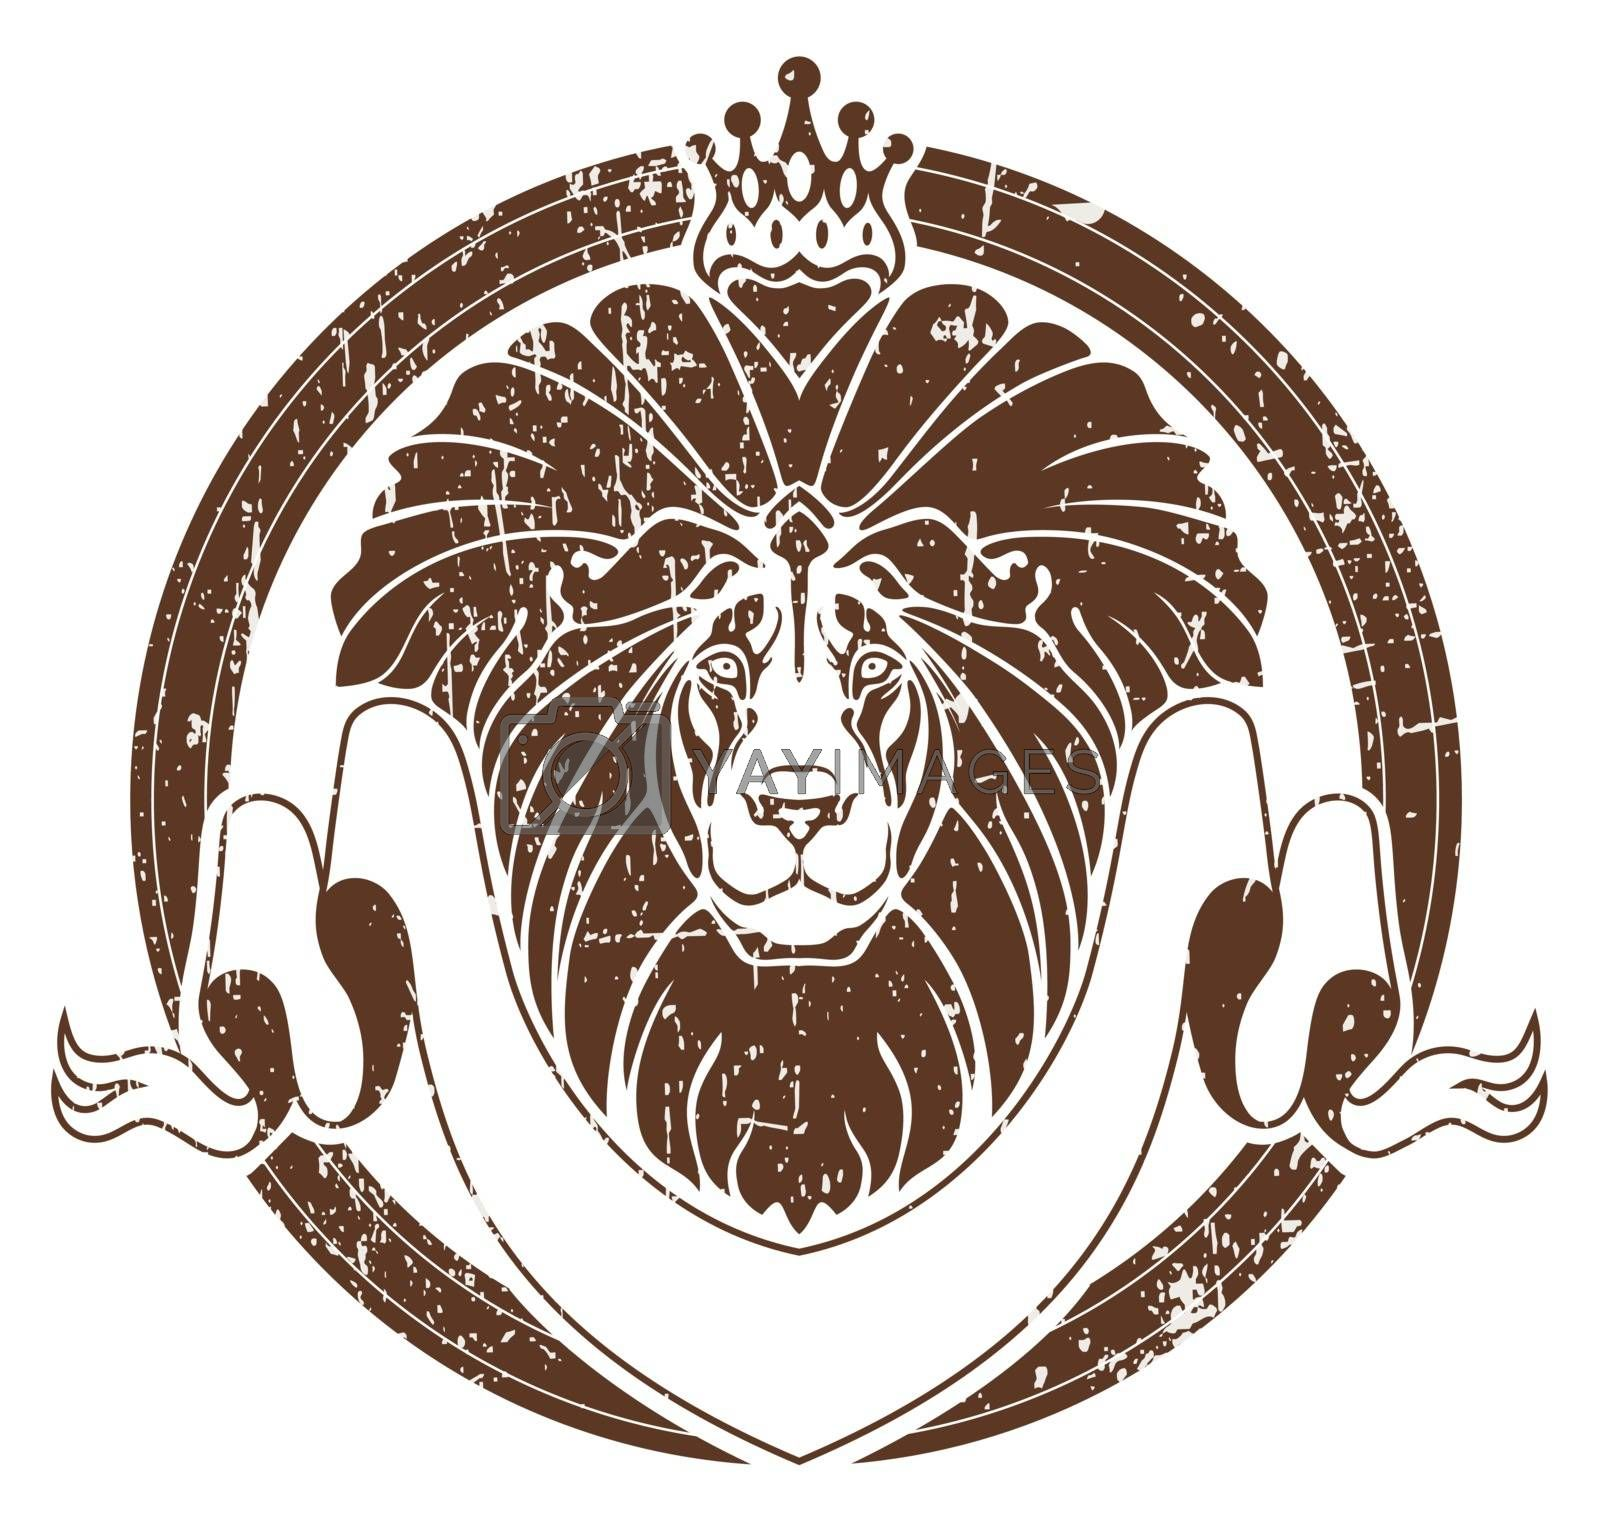 Lion with crown as emblem